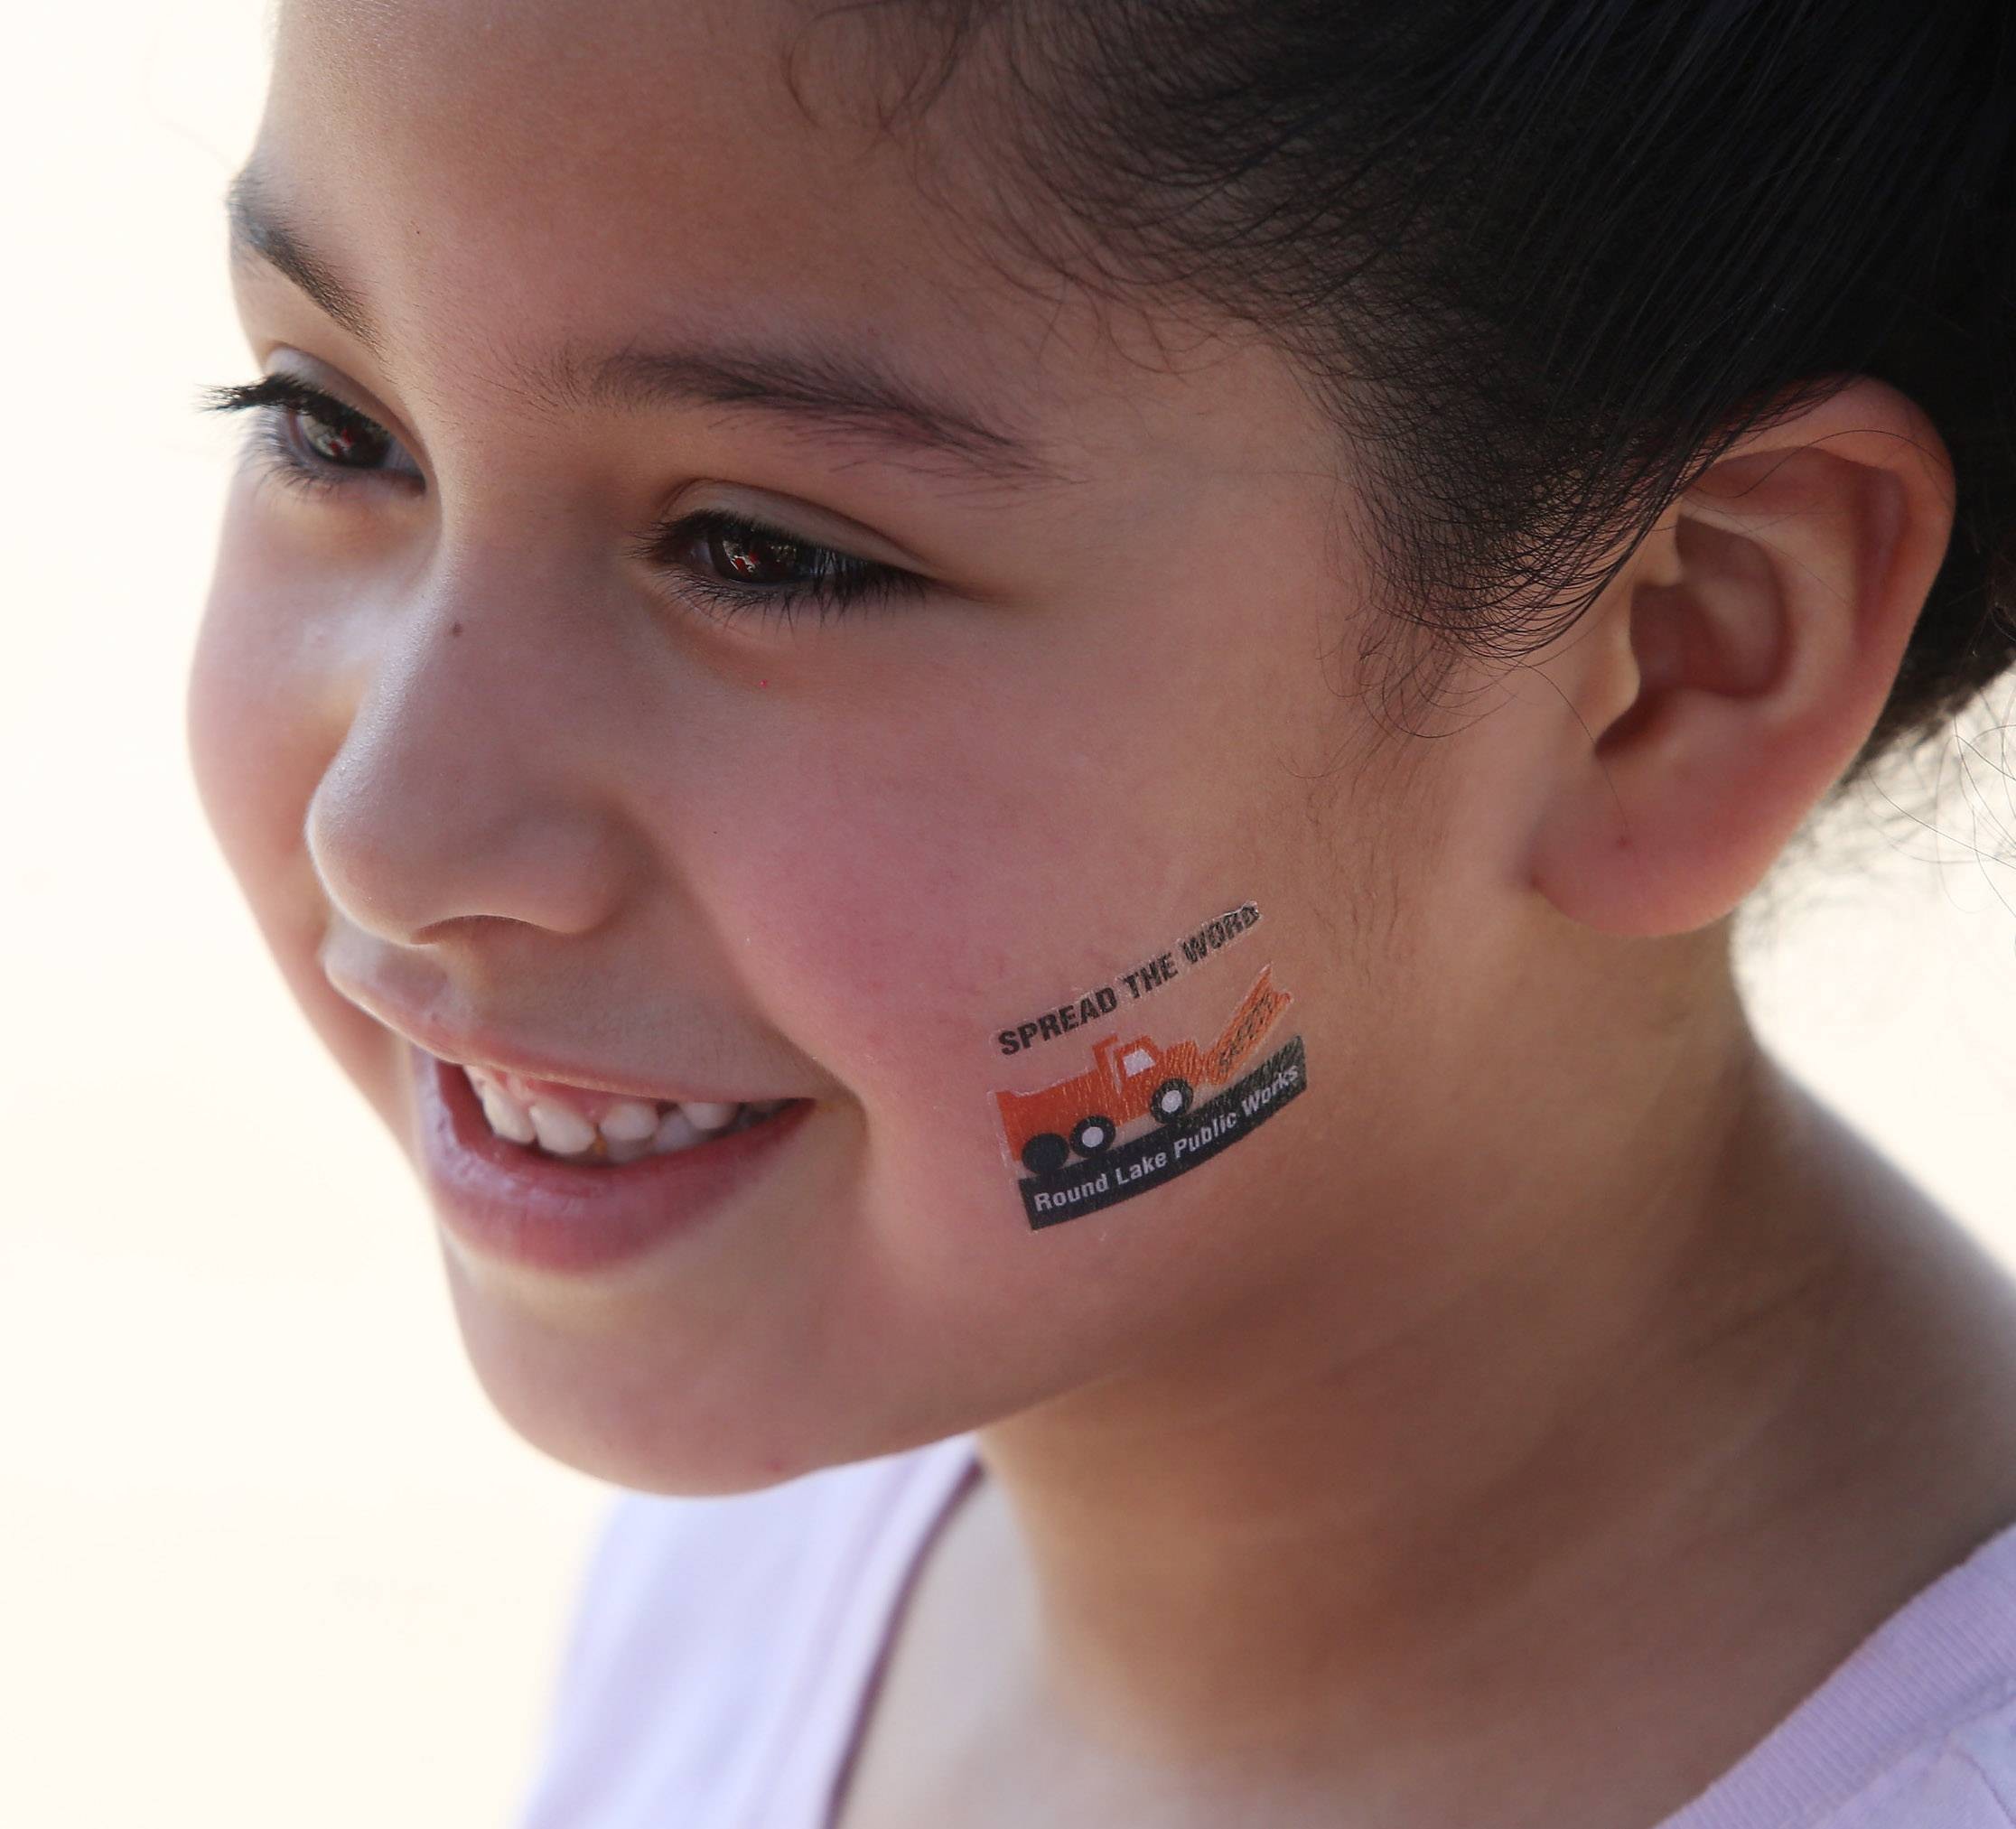 Sara Robledo, 6, of Fox Lake, displays a Round Lake Public Works tattoo during the first Round Lake Public Works Open House. Wednesday's event featured public works, police and fire vehicles.